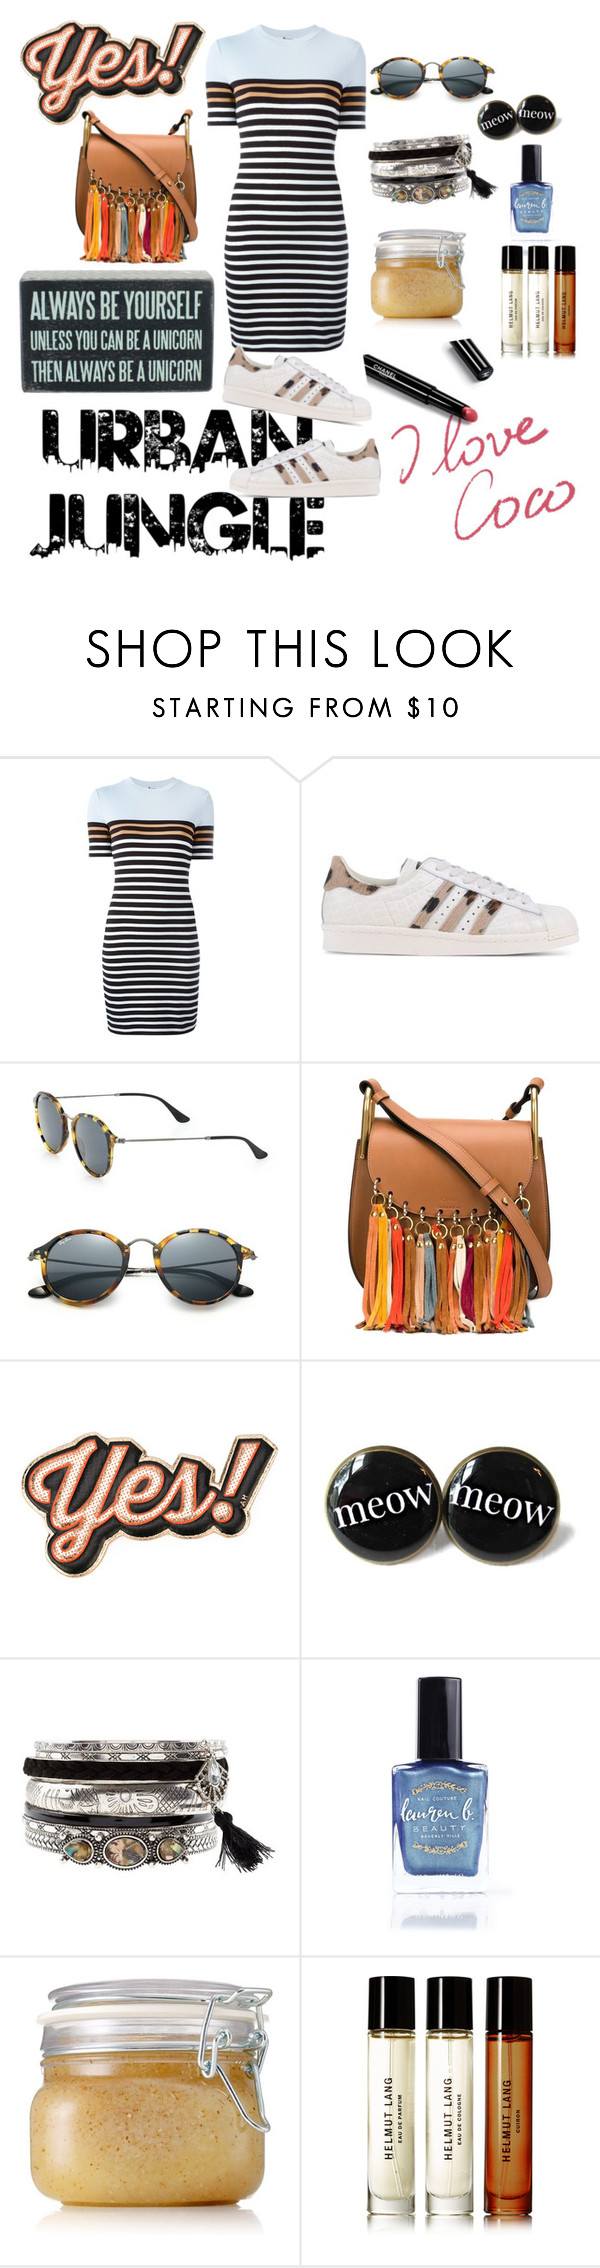 """""""Untitled #84"""" by ana-jg ❤ liked on Polyvore featuring T By Alexander Wang, adidas Originals, Ray-Ban, Chloé, Anya Hindmarch, Lauren B. Beauty, Origins, Chanel, Helmut Lang and Primitives By Kathy"""